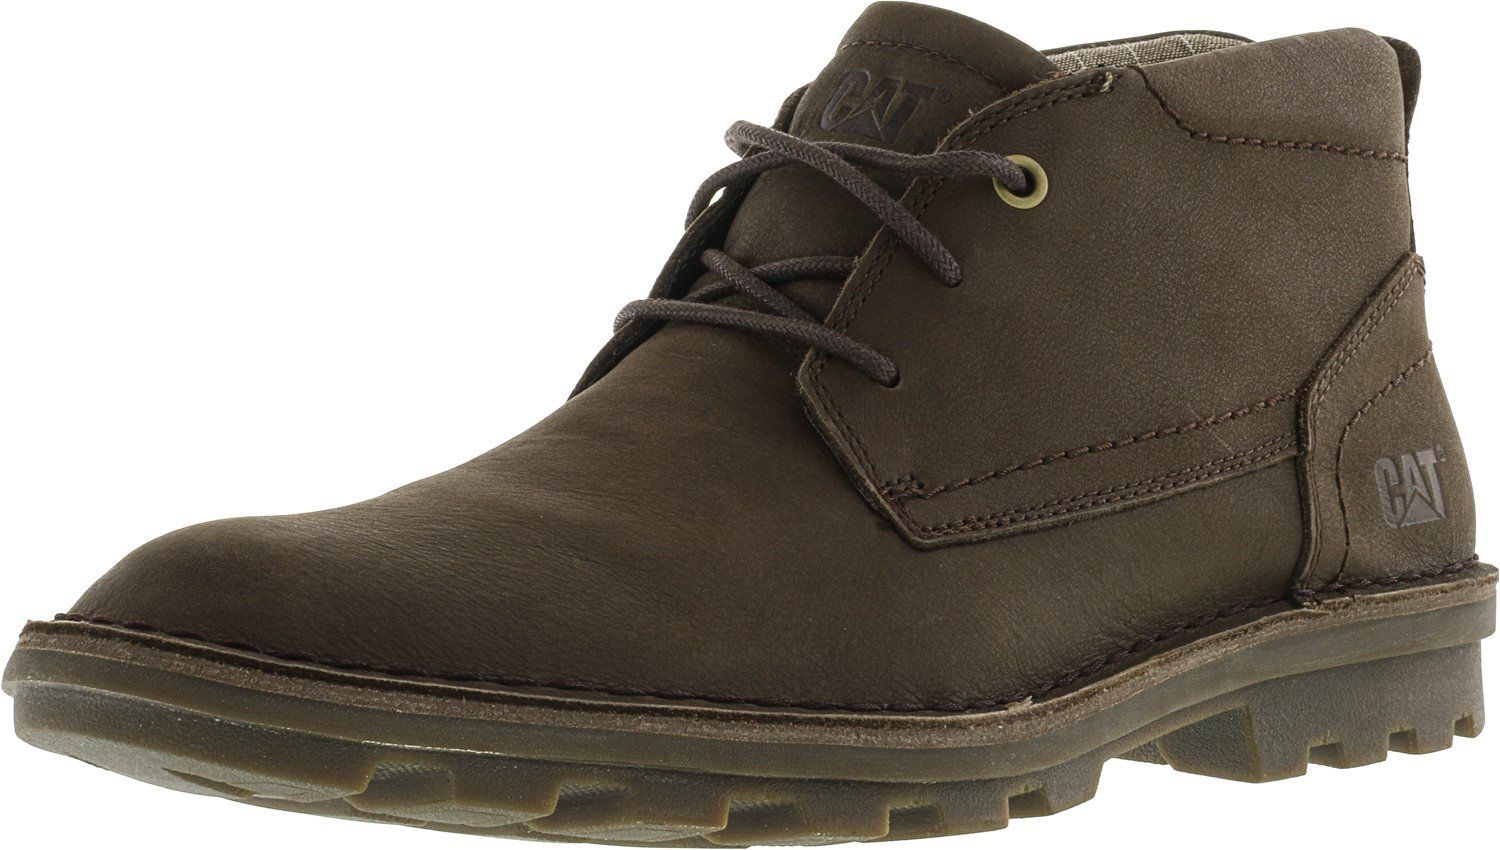 Caterpillar Men's Brady Mid Chukka Boot, Summer Brown, 12 M US